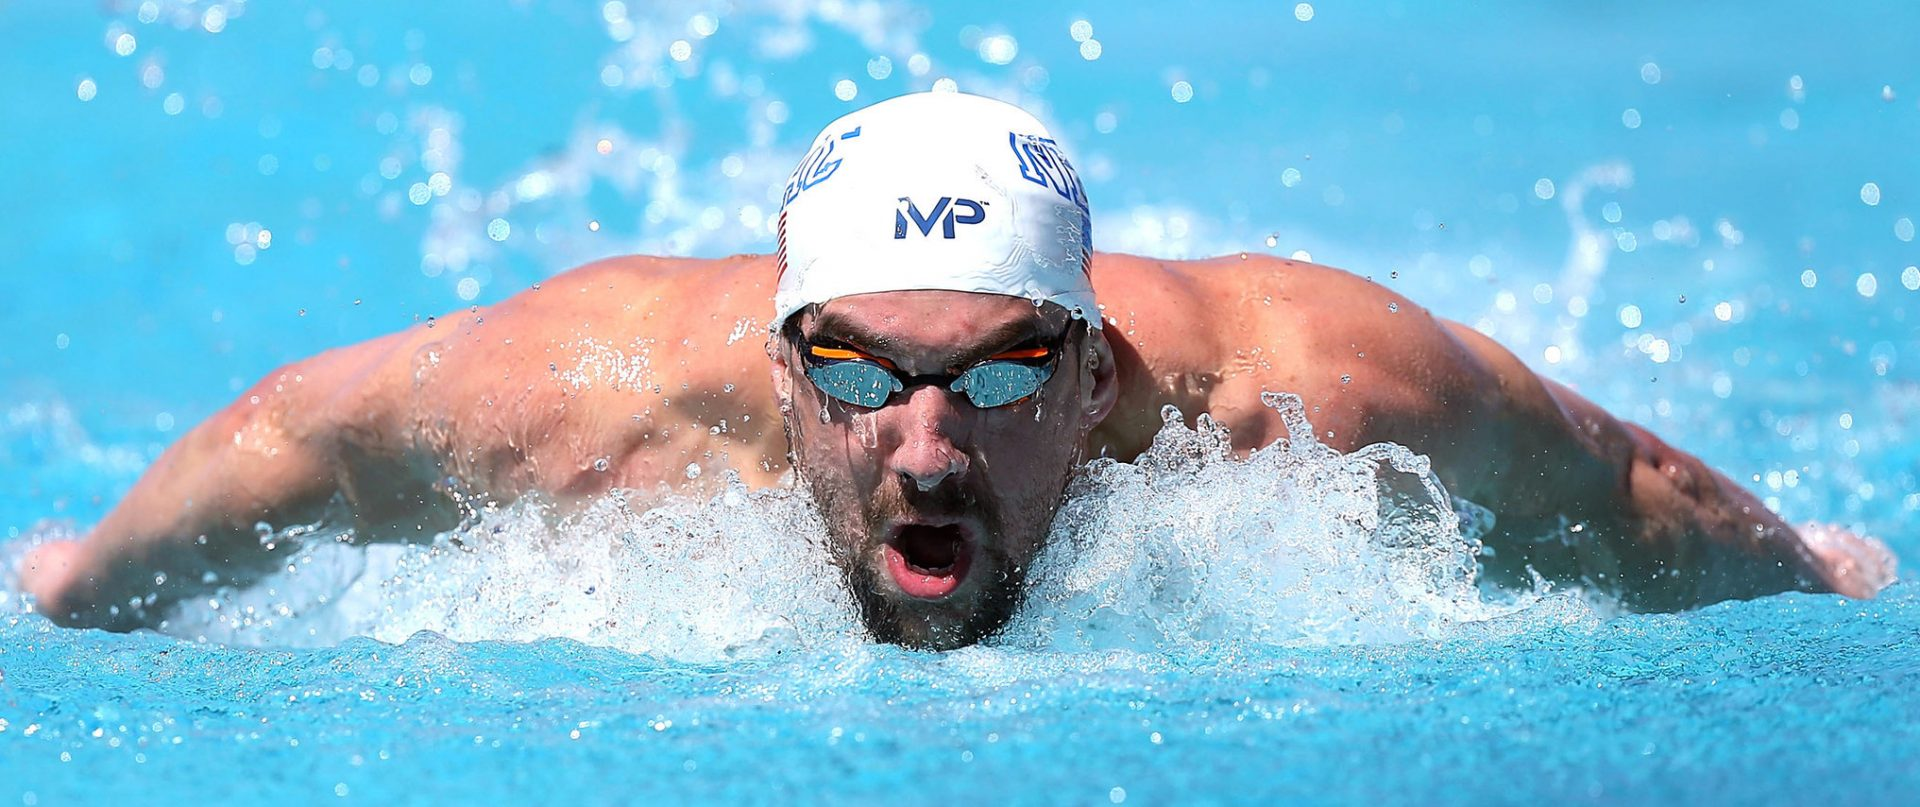 sp u00e9cial jo de rio   6 citations du champion michael phelps